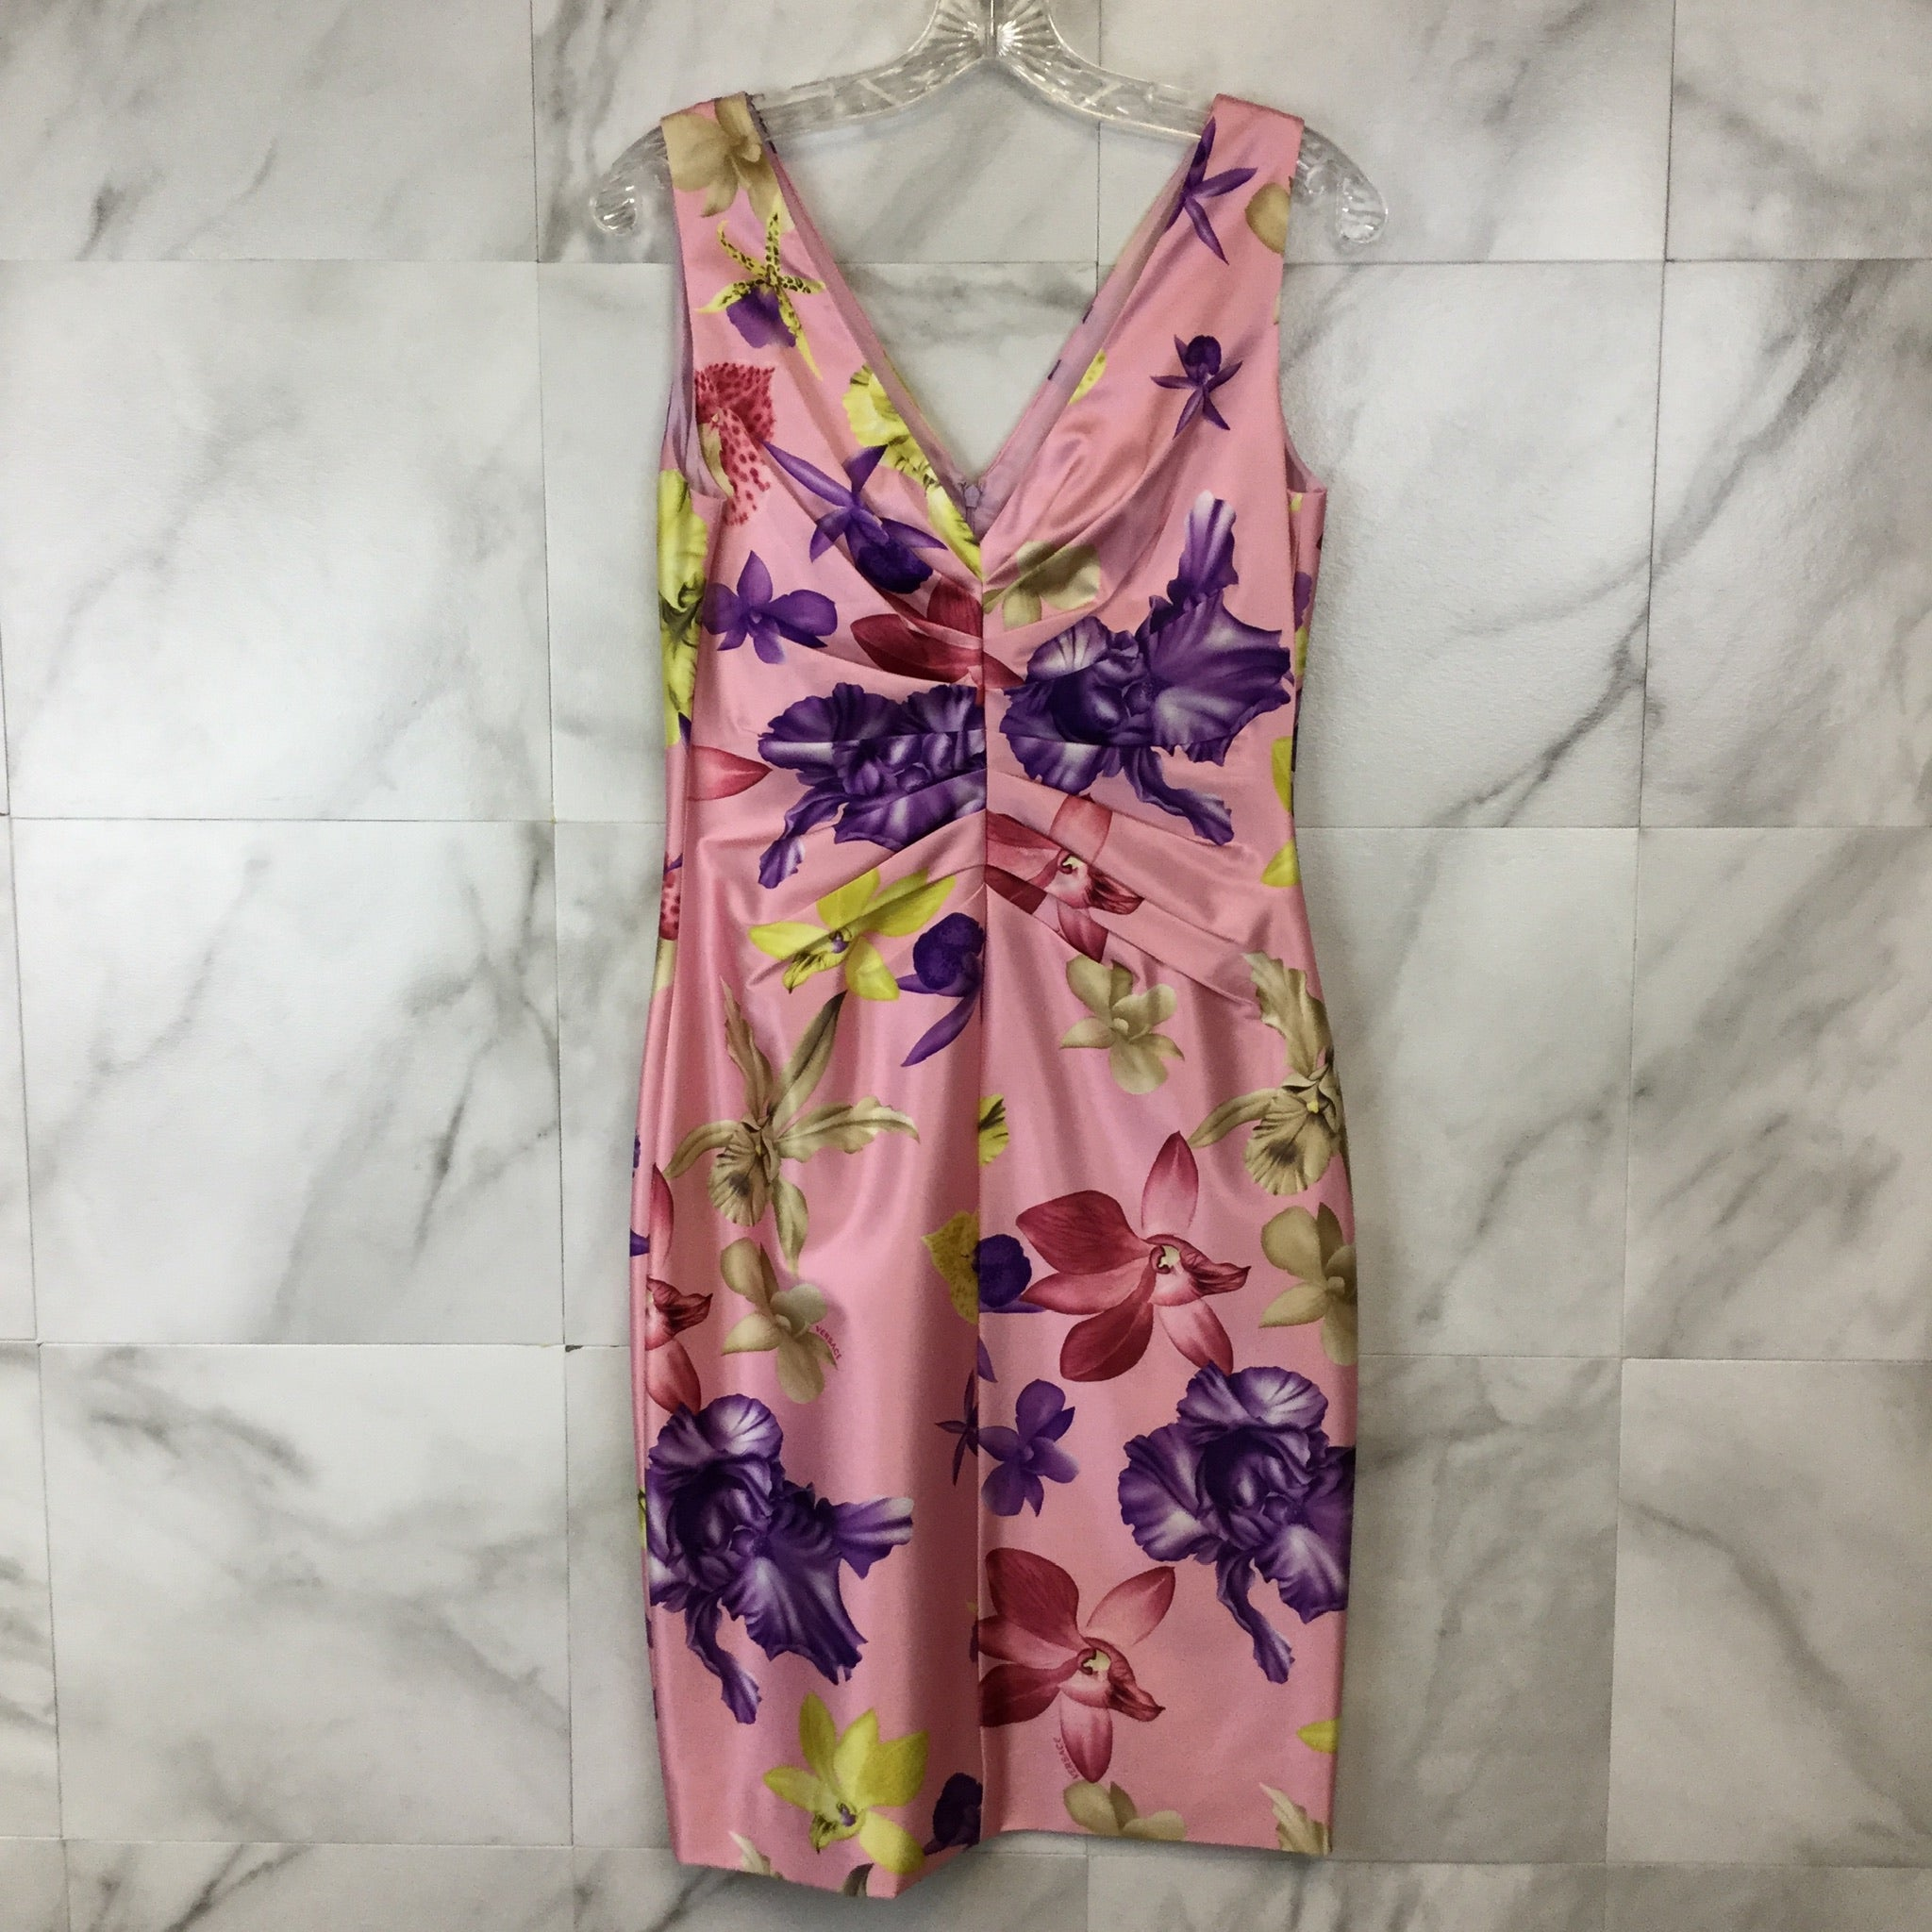 Versace Floral Ruched Sheath Dress - size 8